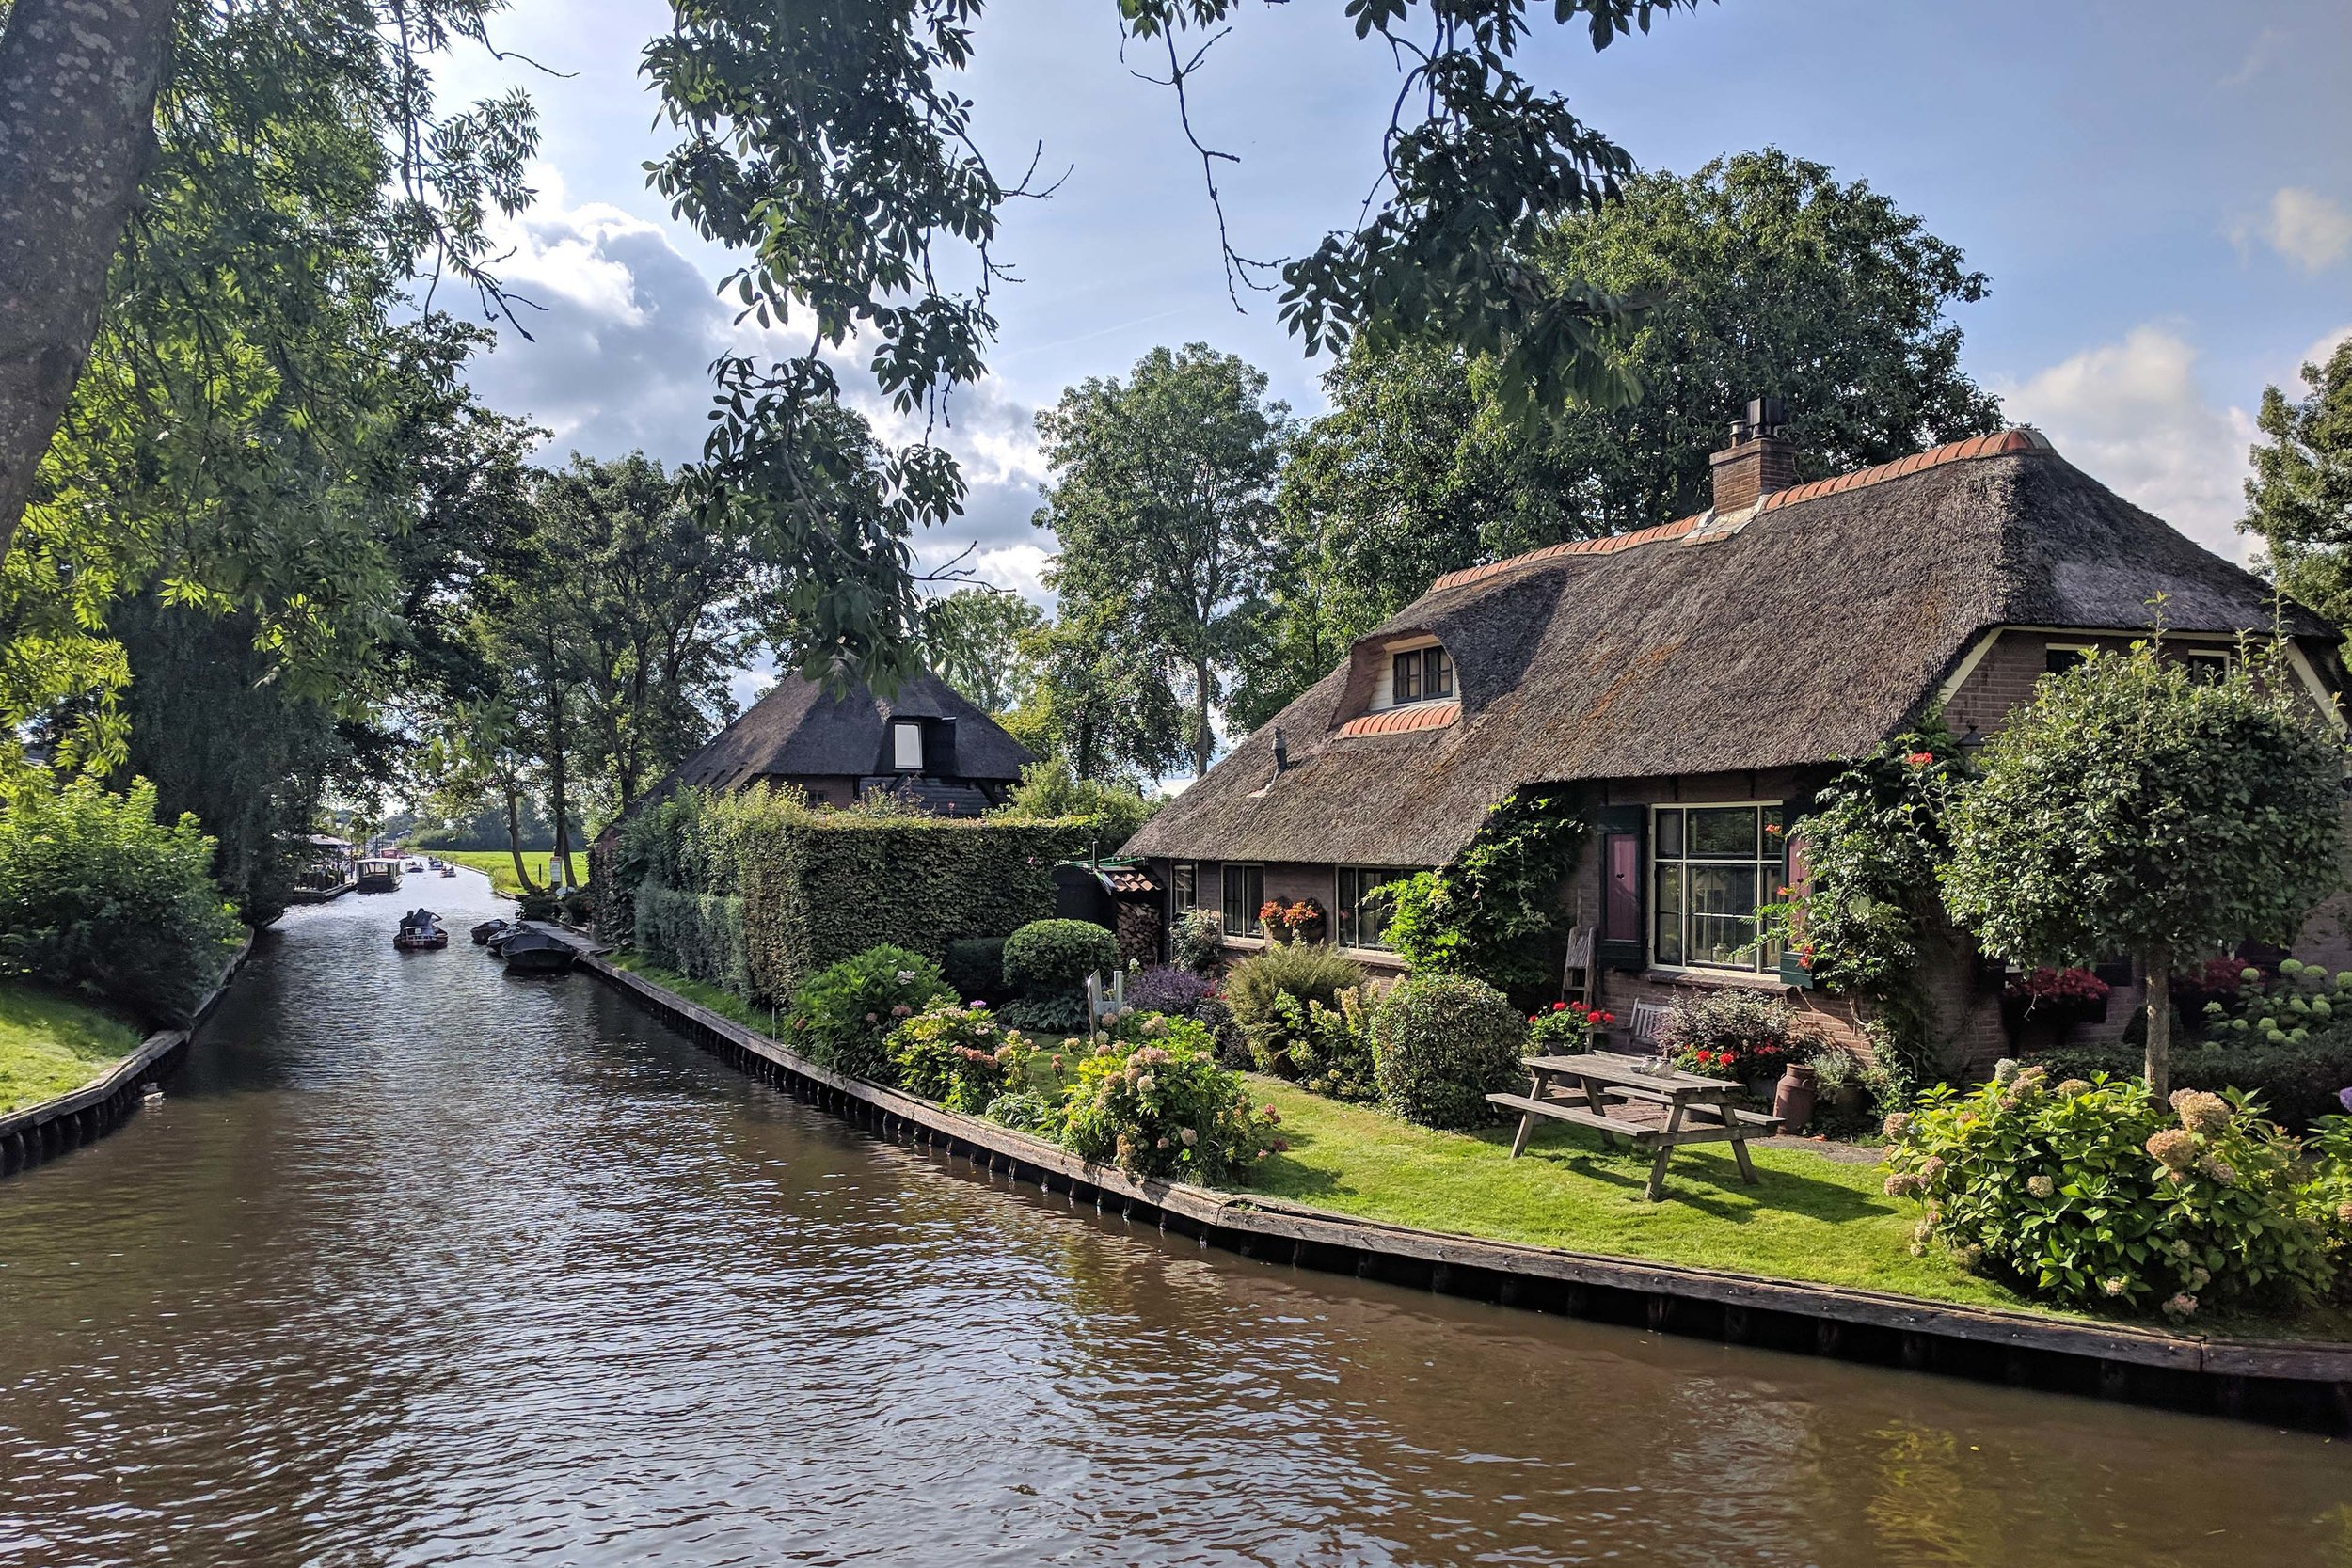 Giethoorn Thatched Houses Gorgeous.jpg